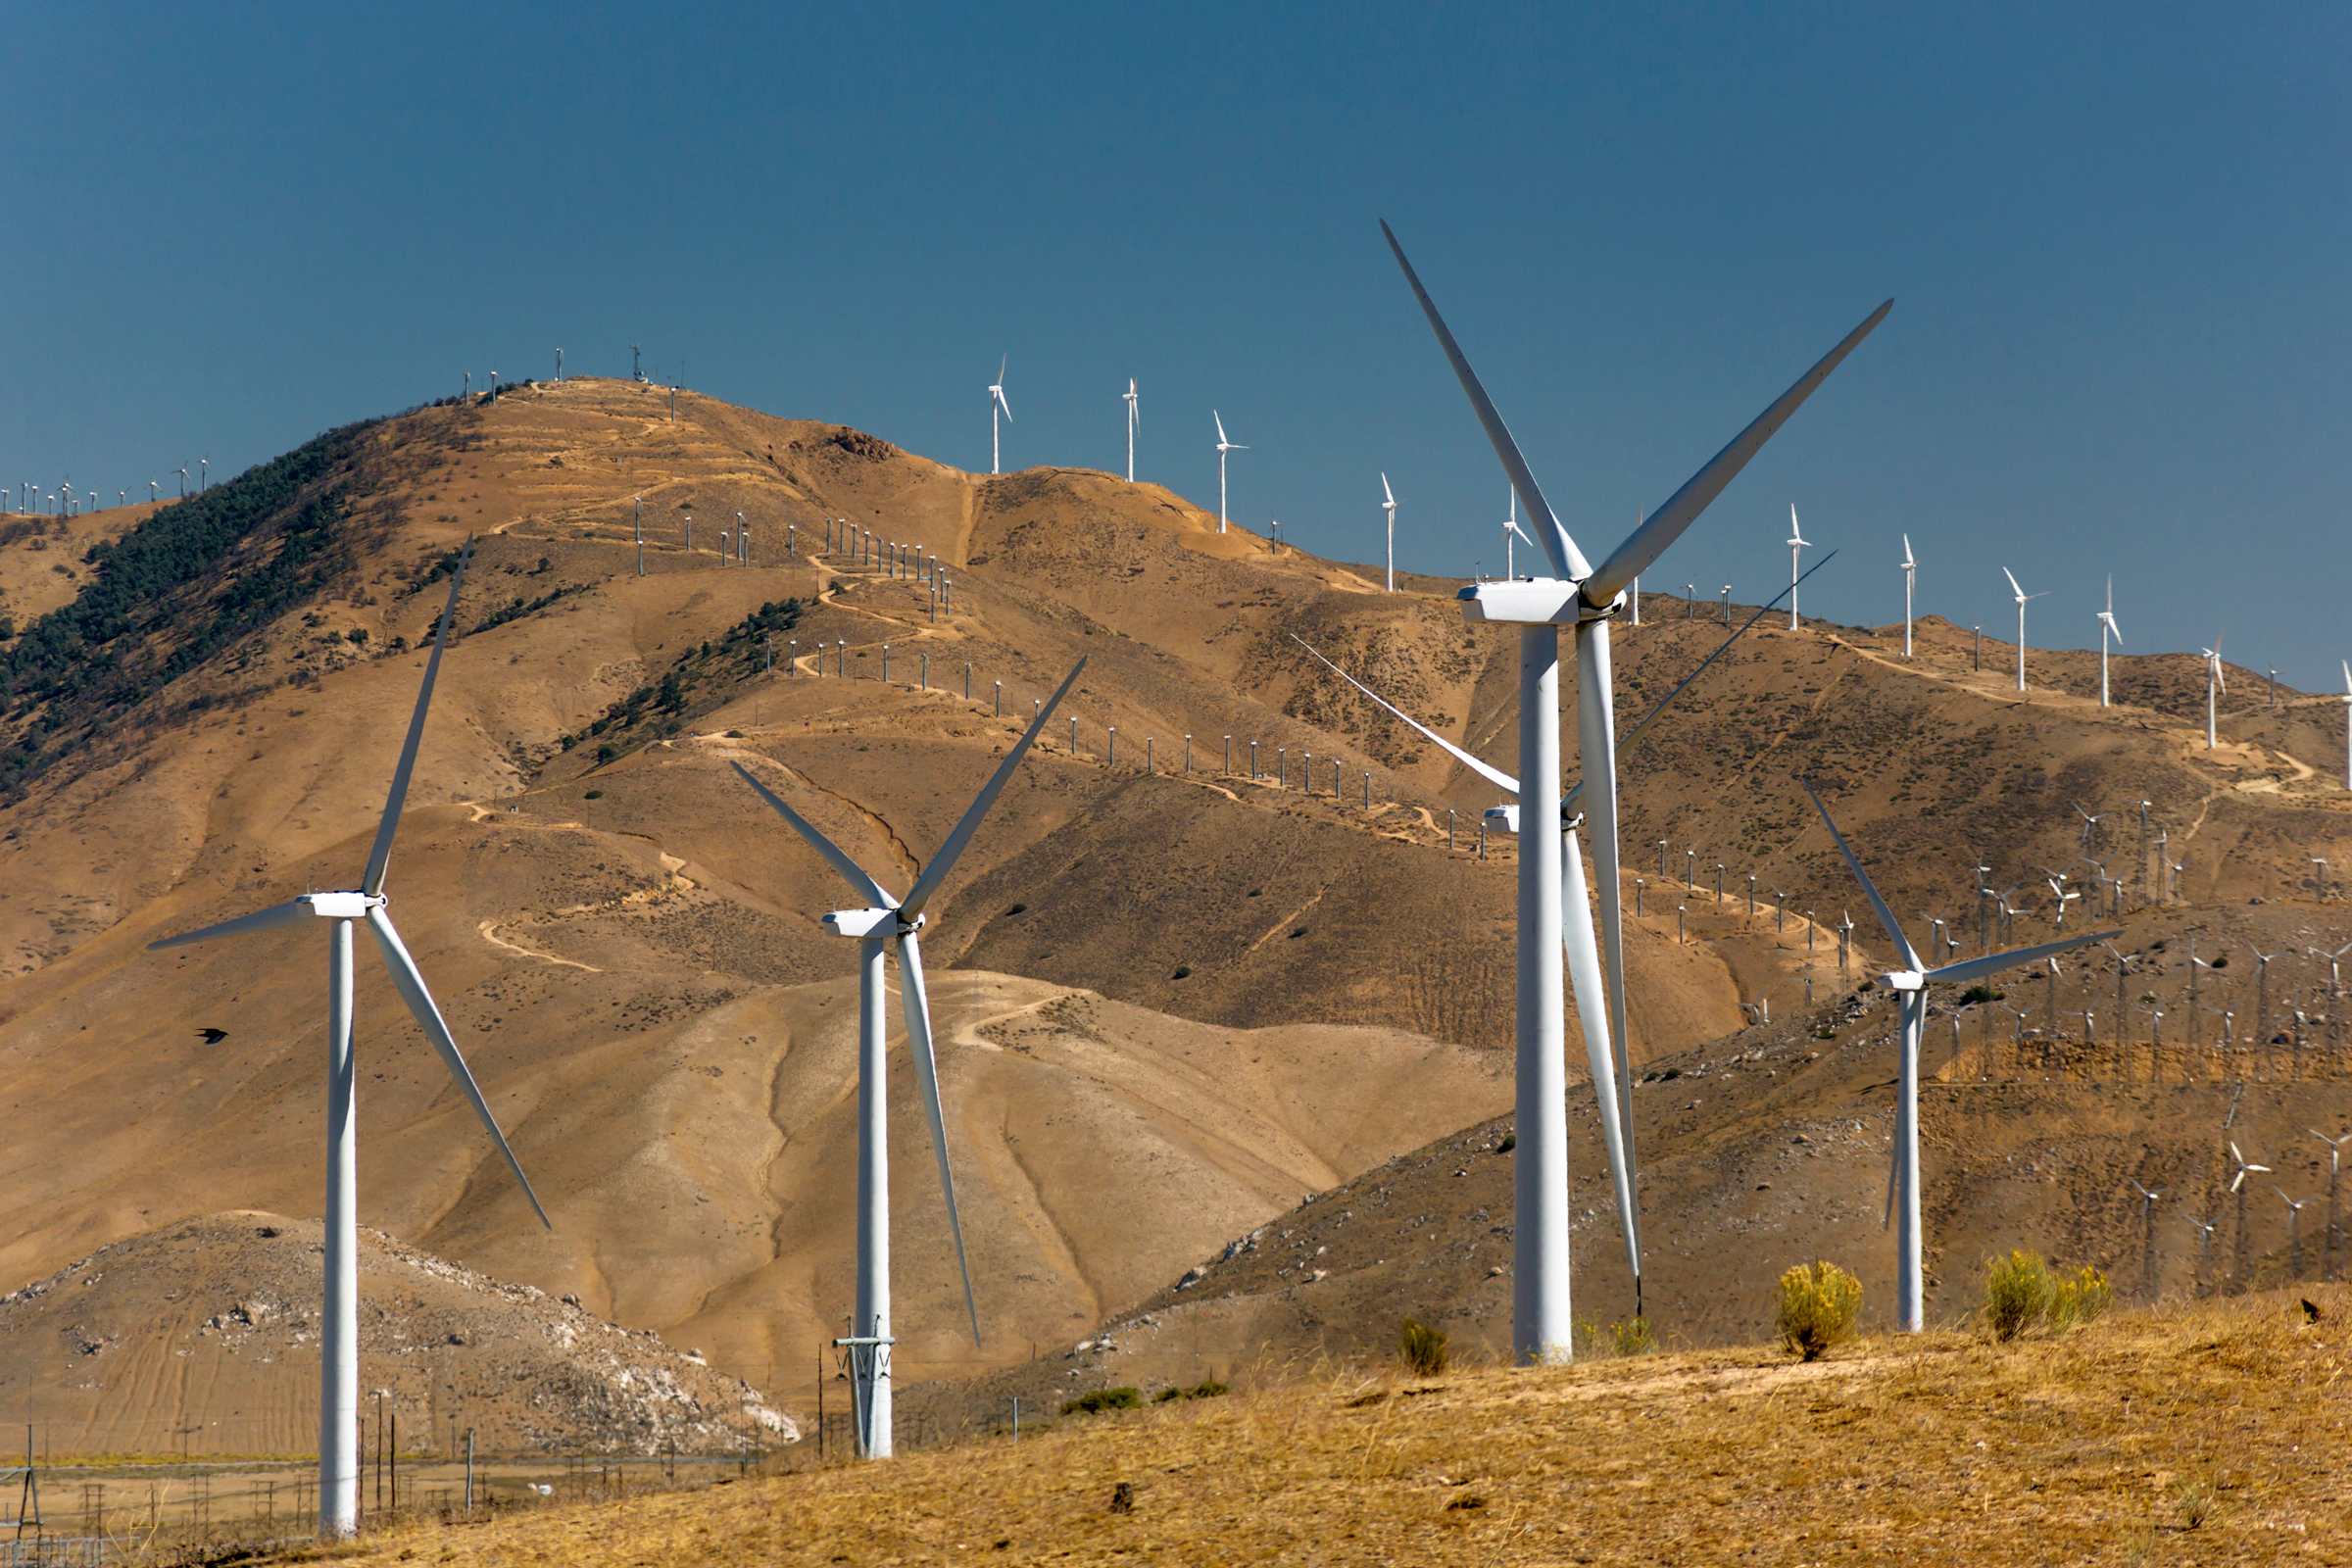 Three wind turbines stand tall in the foreground before rows of more turbines lining the Tehachapi Mountains. Russell Kord/Alamy